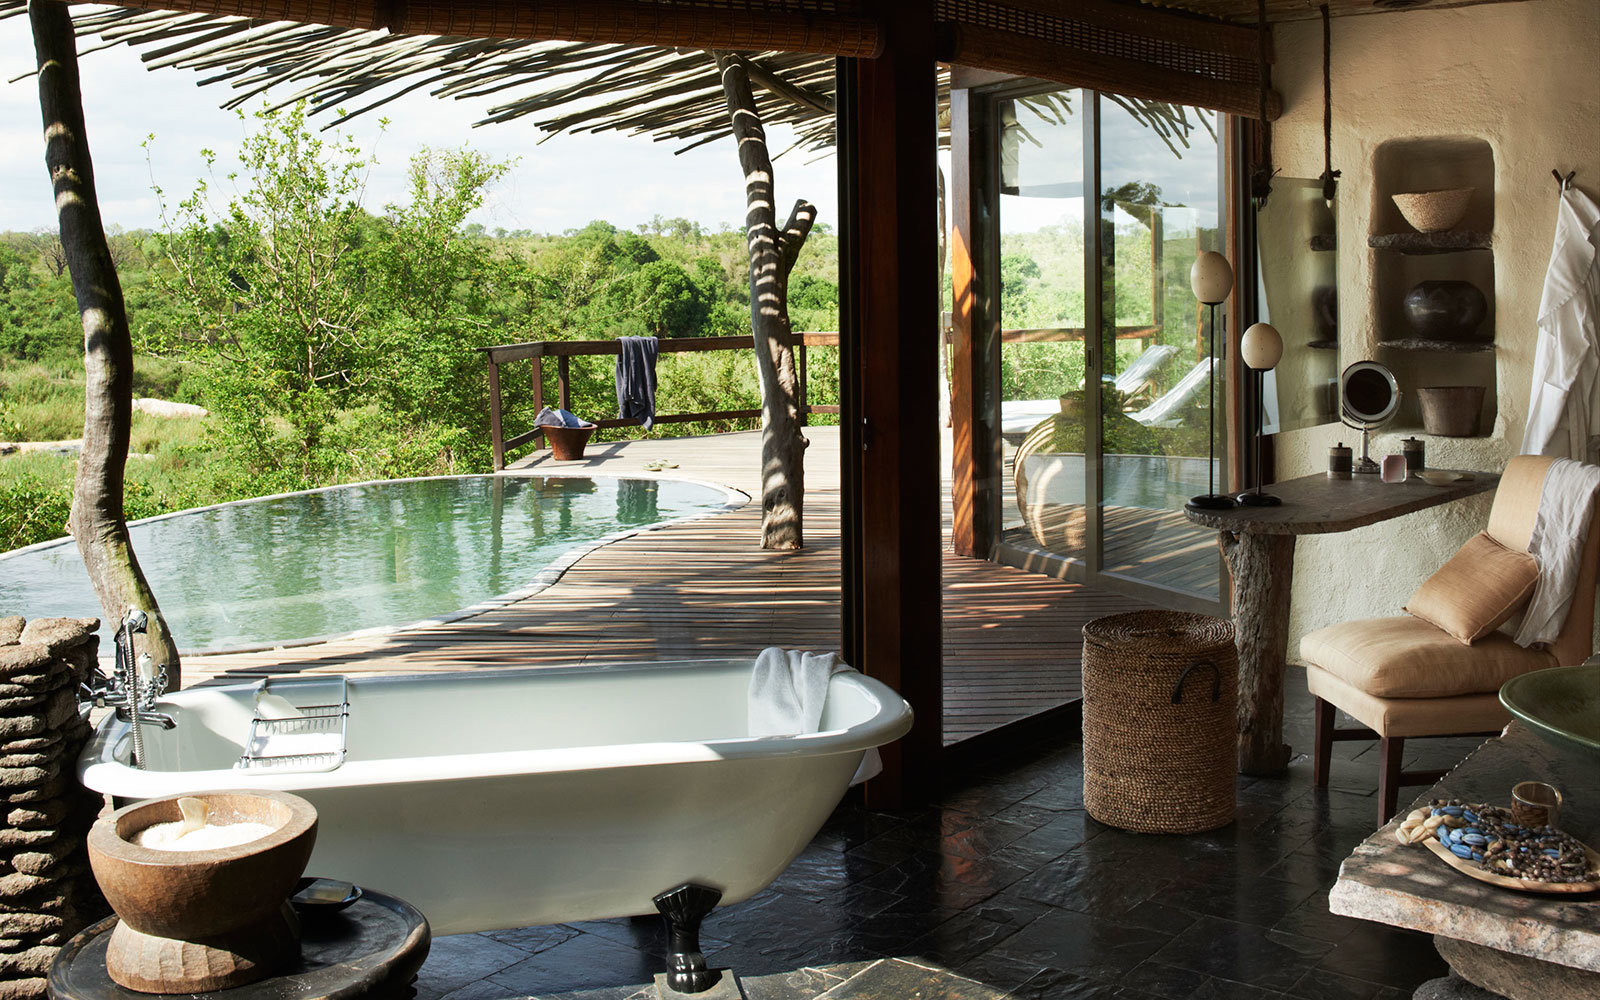 private terrace and pool at Singita Sabi Sand, Kruger National Park, South Africa